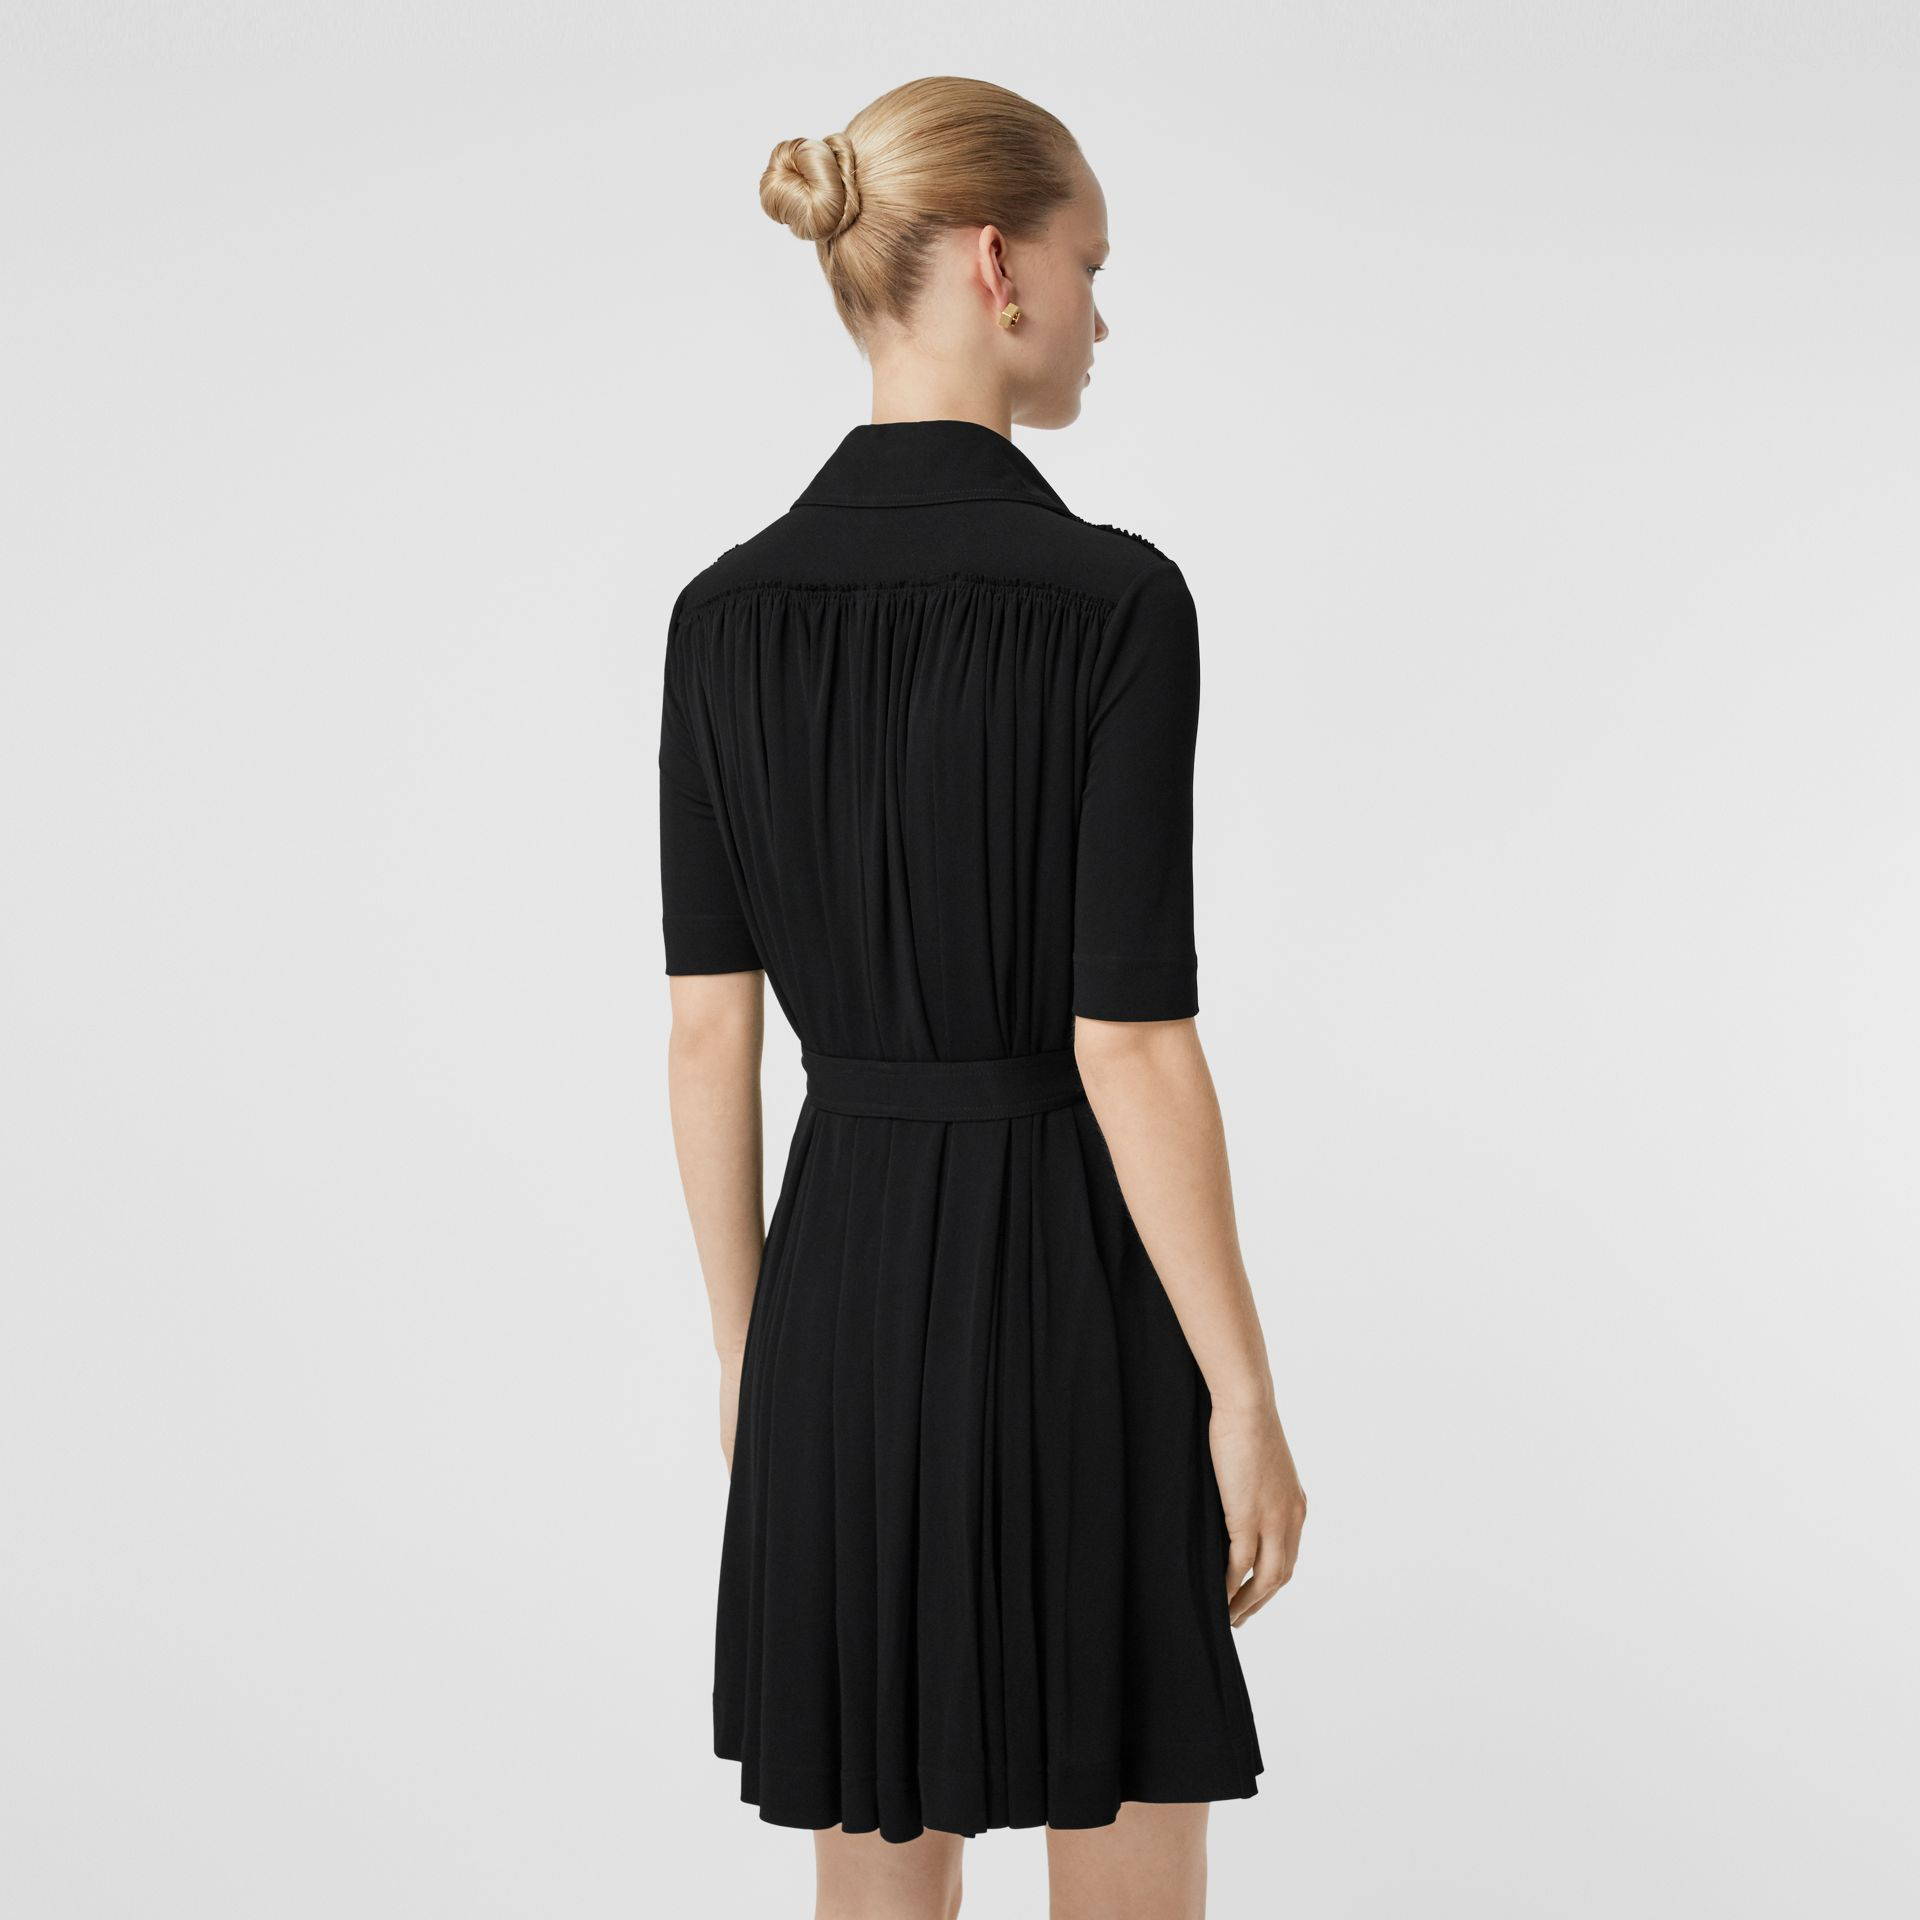 Short-sleeve Gathered Jersey Dress in Black - Women | Burberry Hong Kong S.A.R - gallery image 2